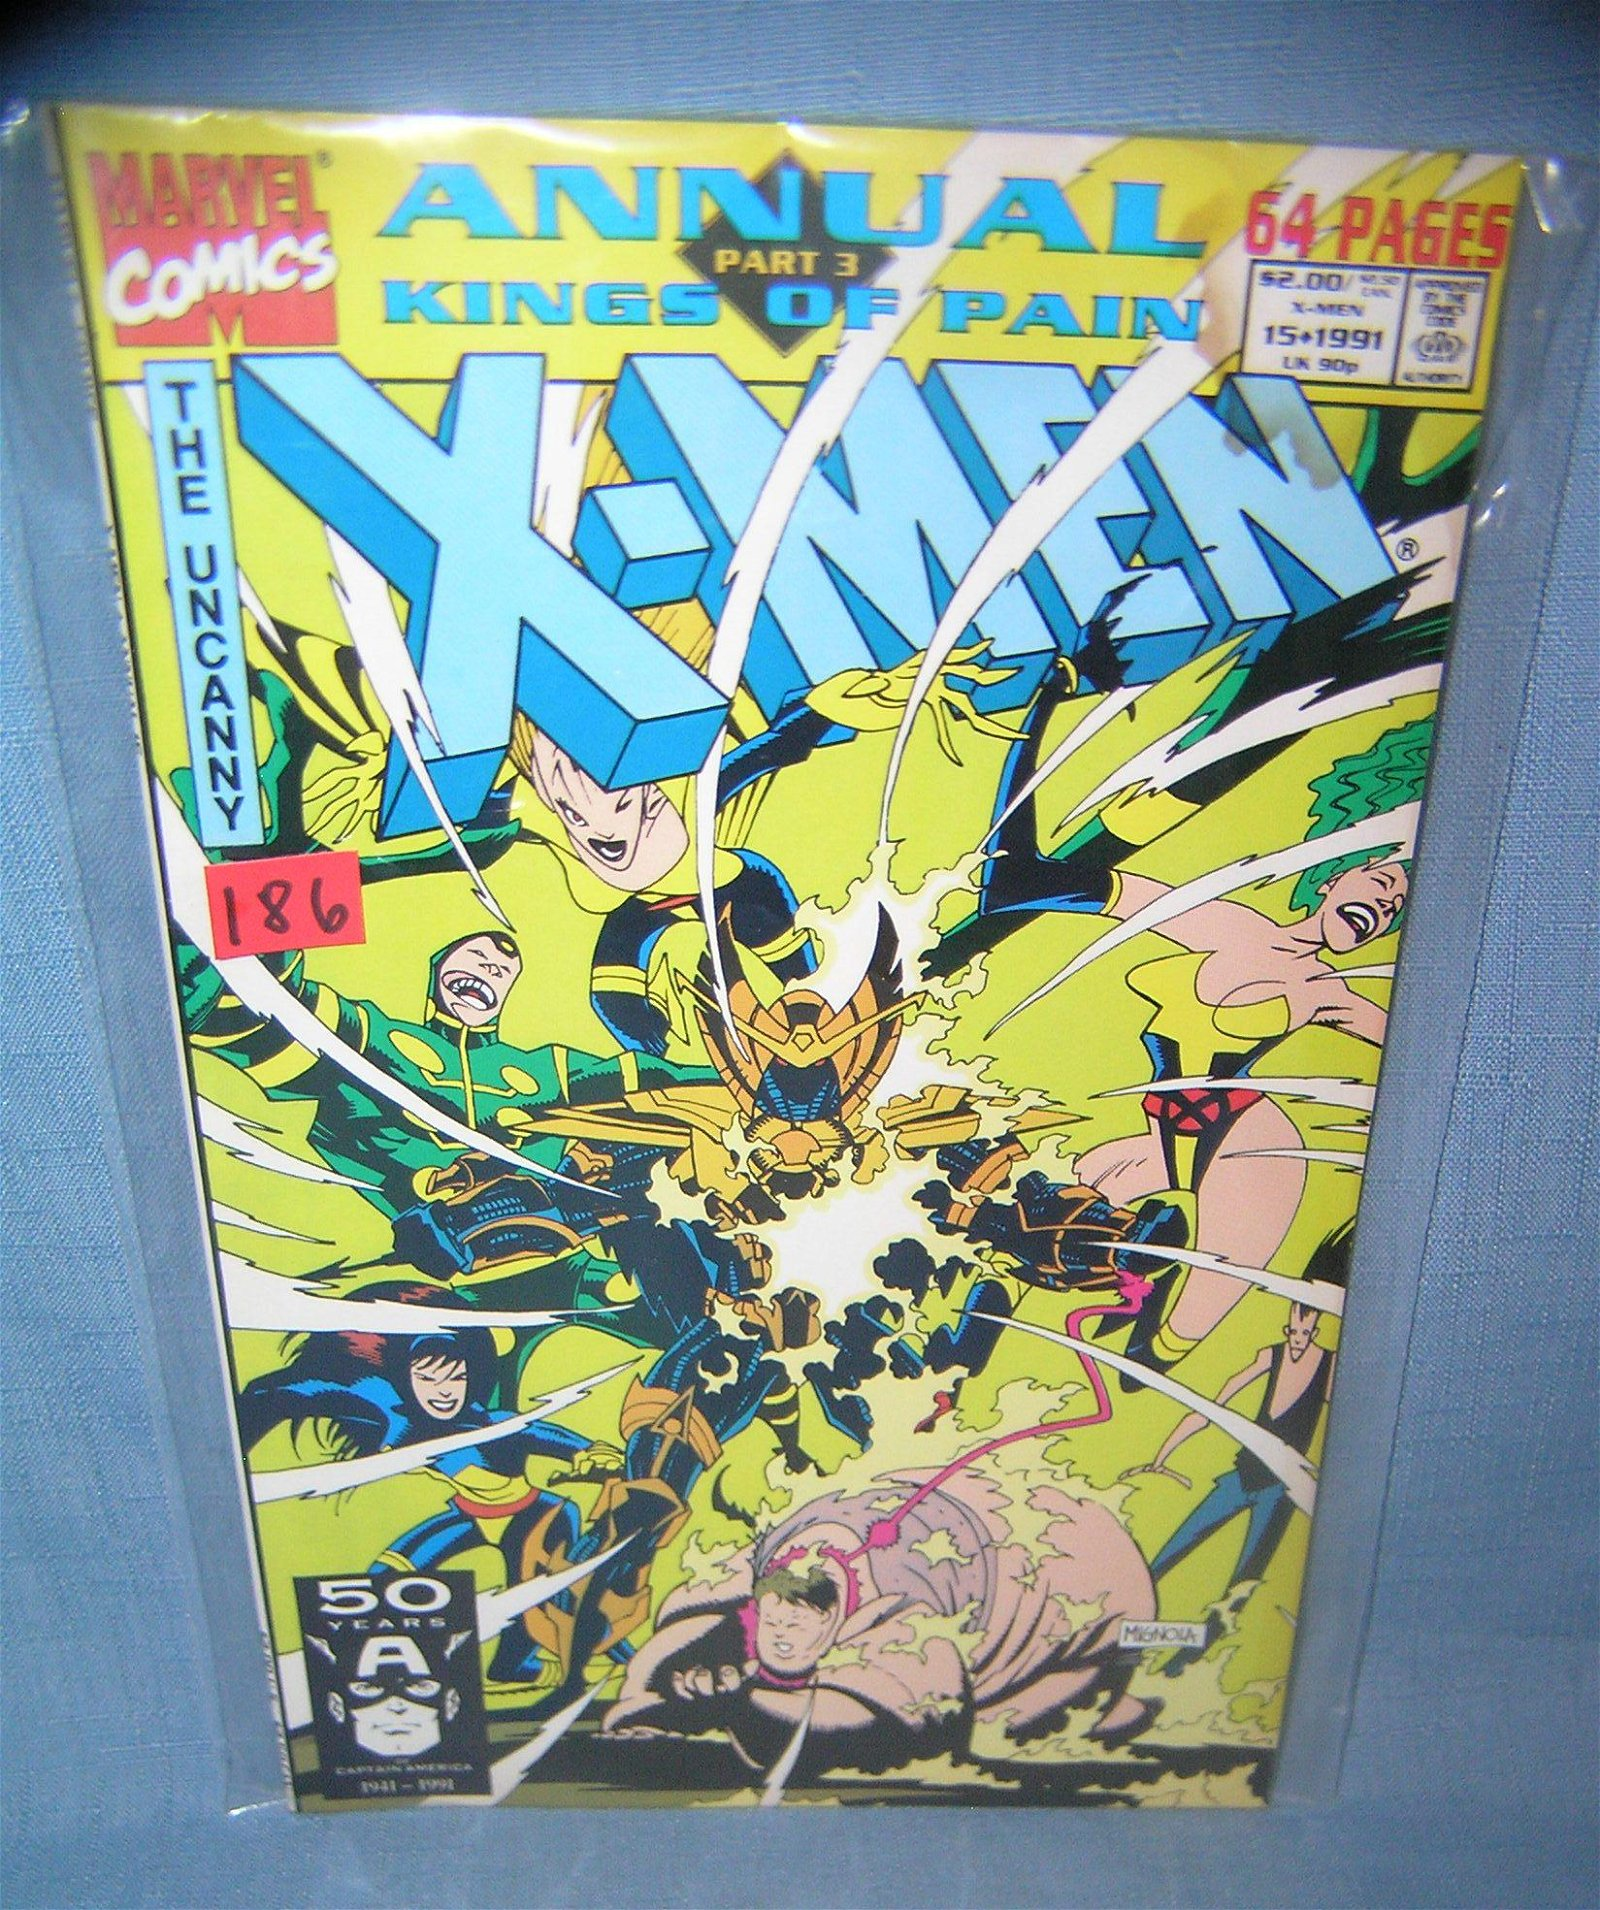 Vintage Xmen annual features Kings of pain